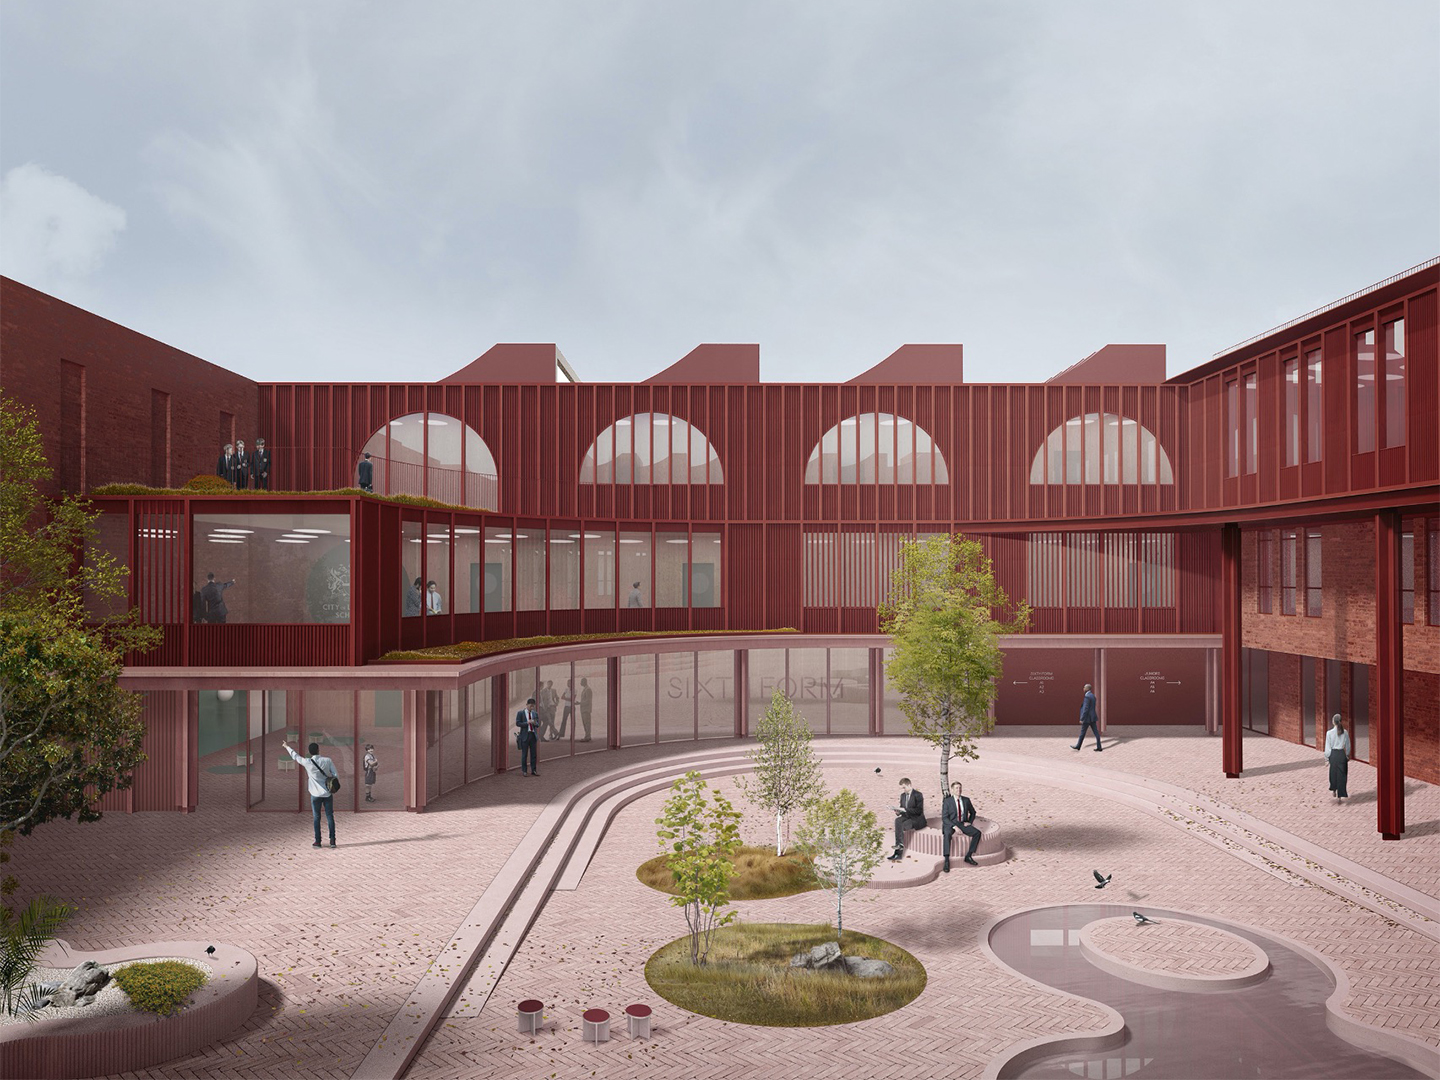 City of London School competition winners announced